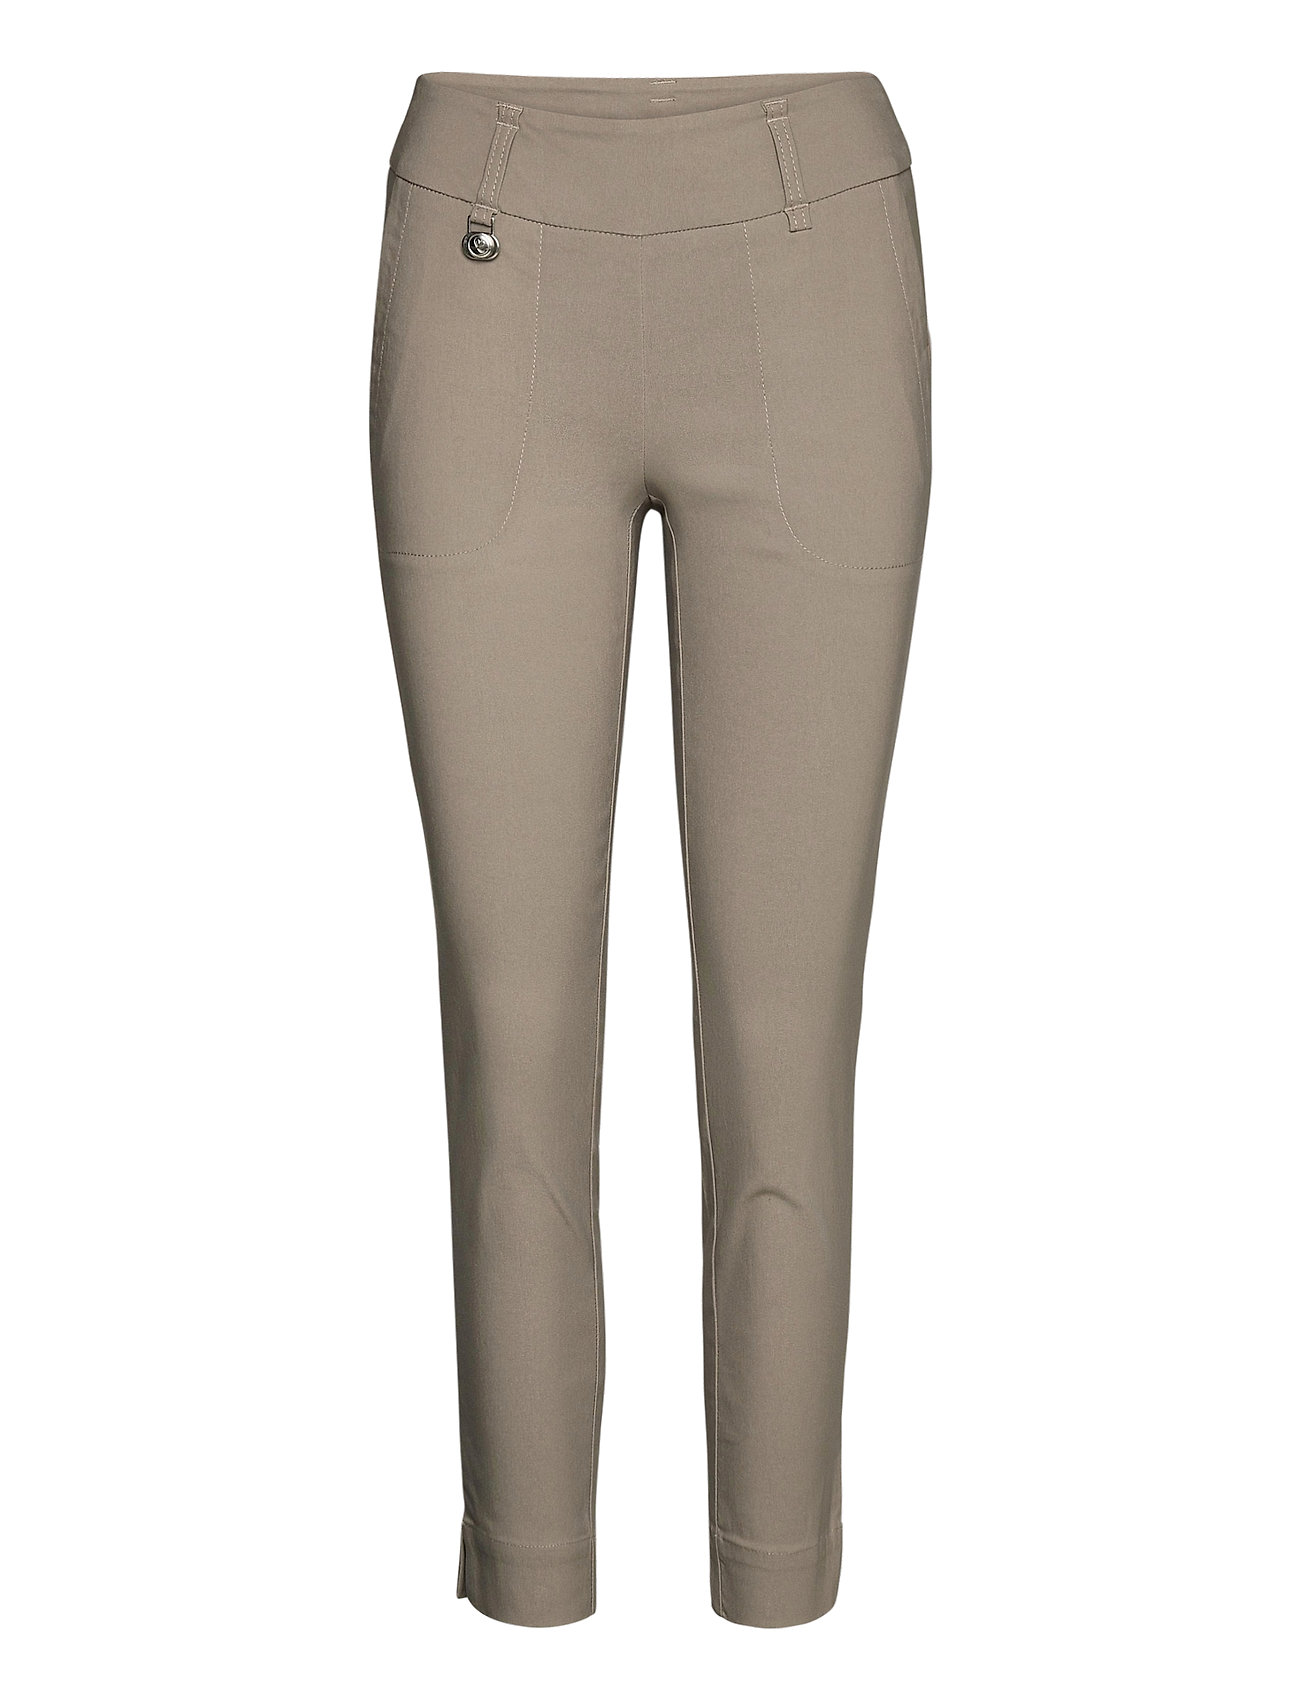 Image of Magic High Water 94 Cm Sport Pants Beige Daily Sports (3452237587)